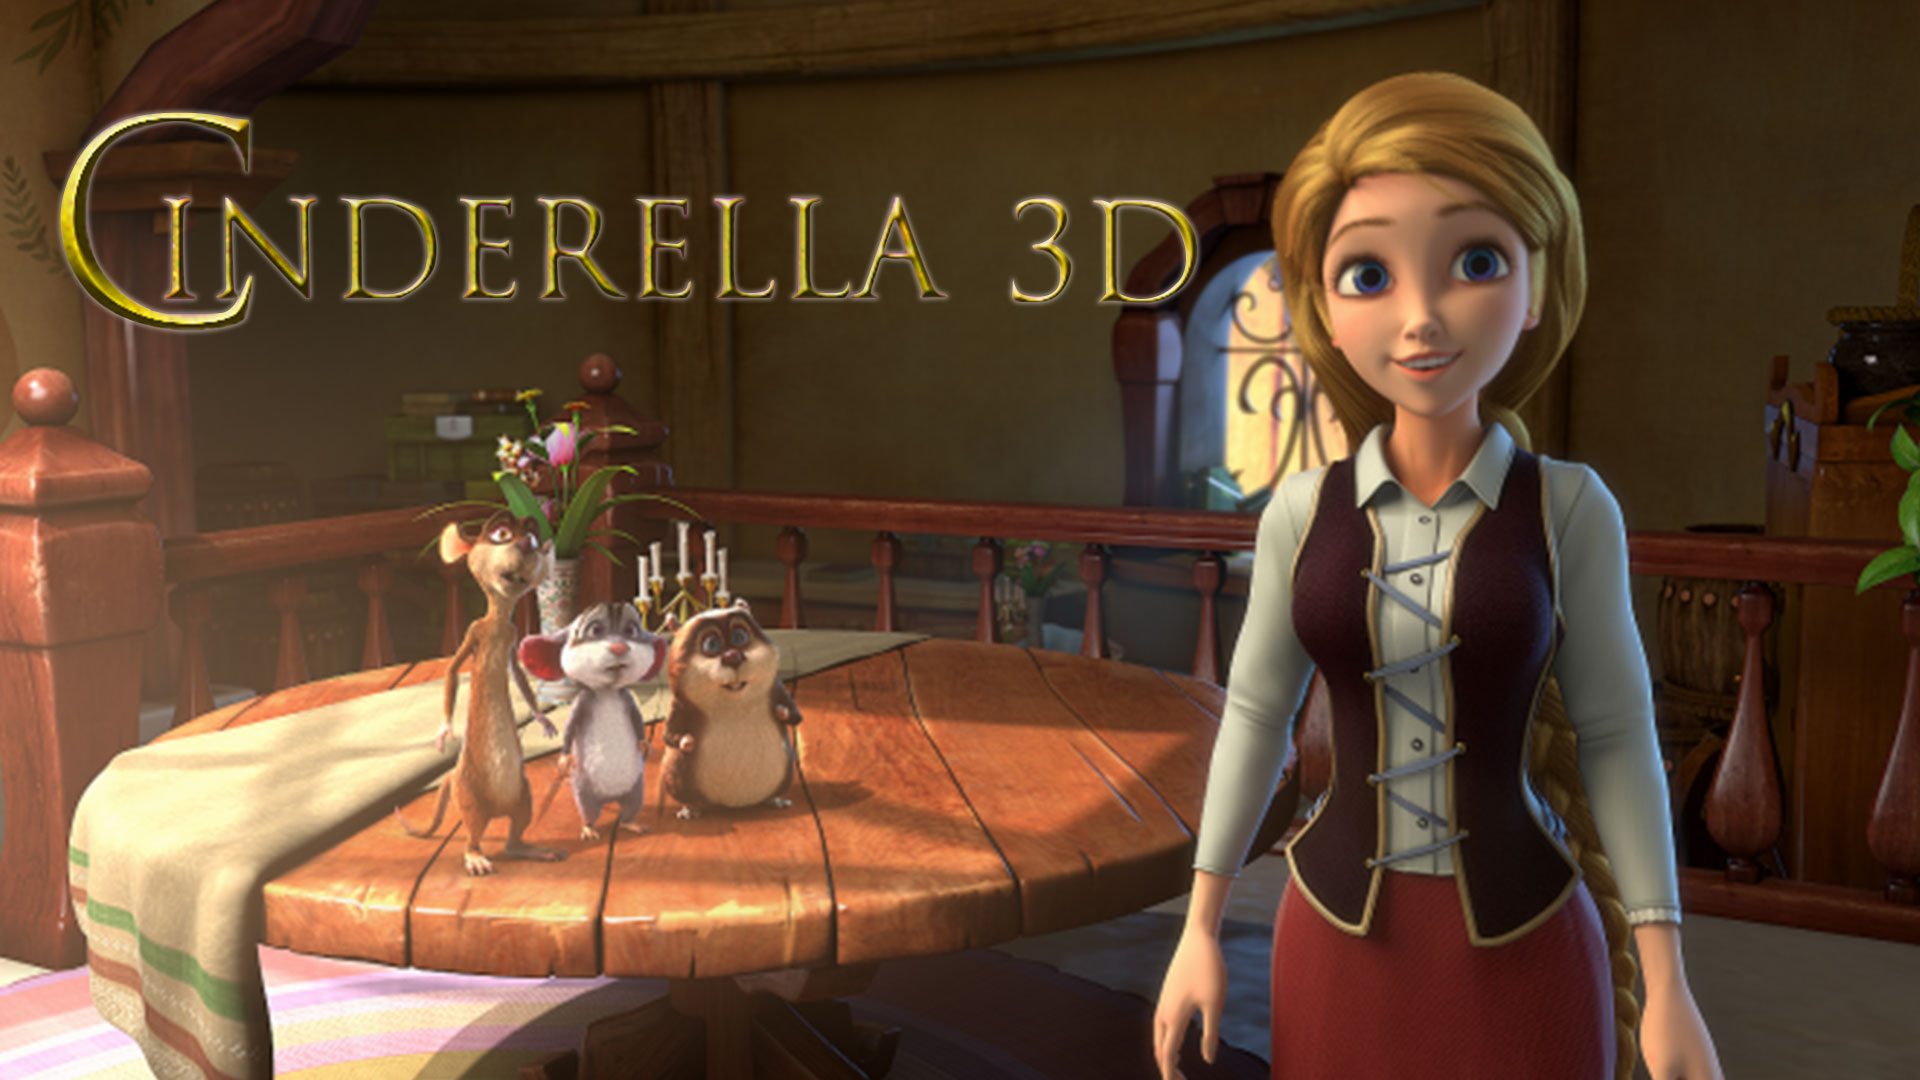 Copy of Cinderella 3D